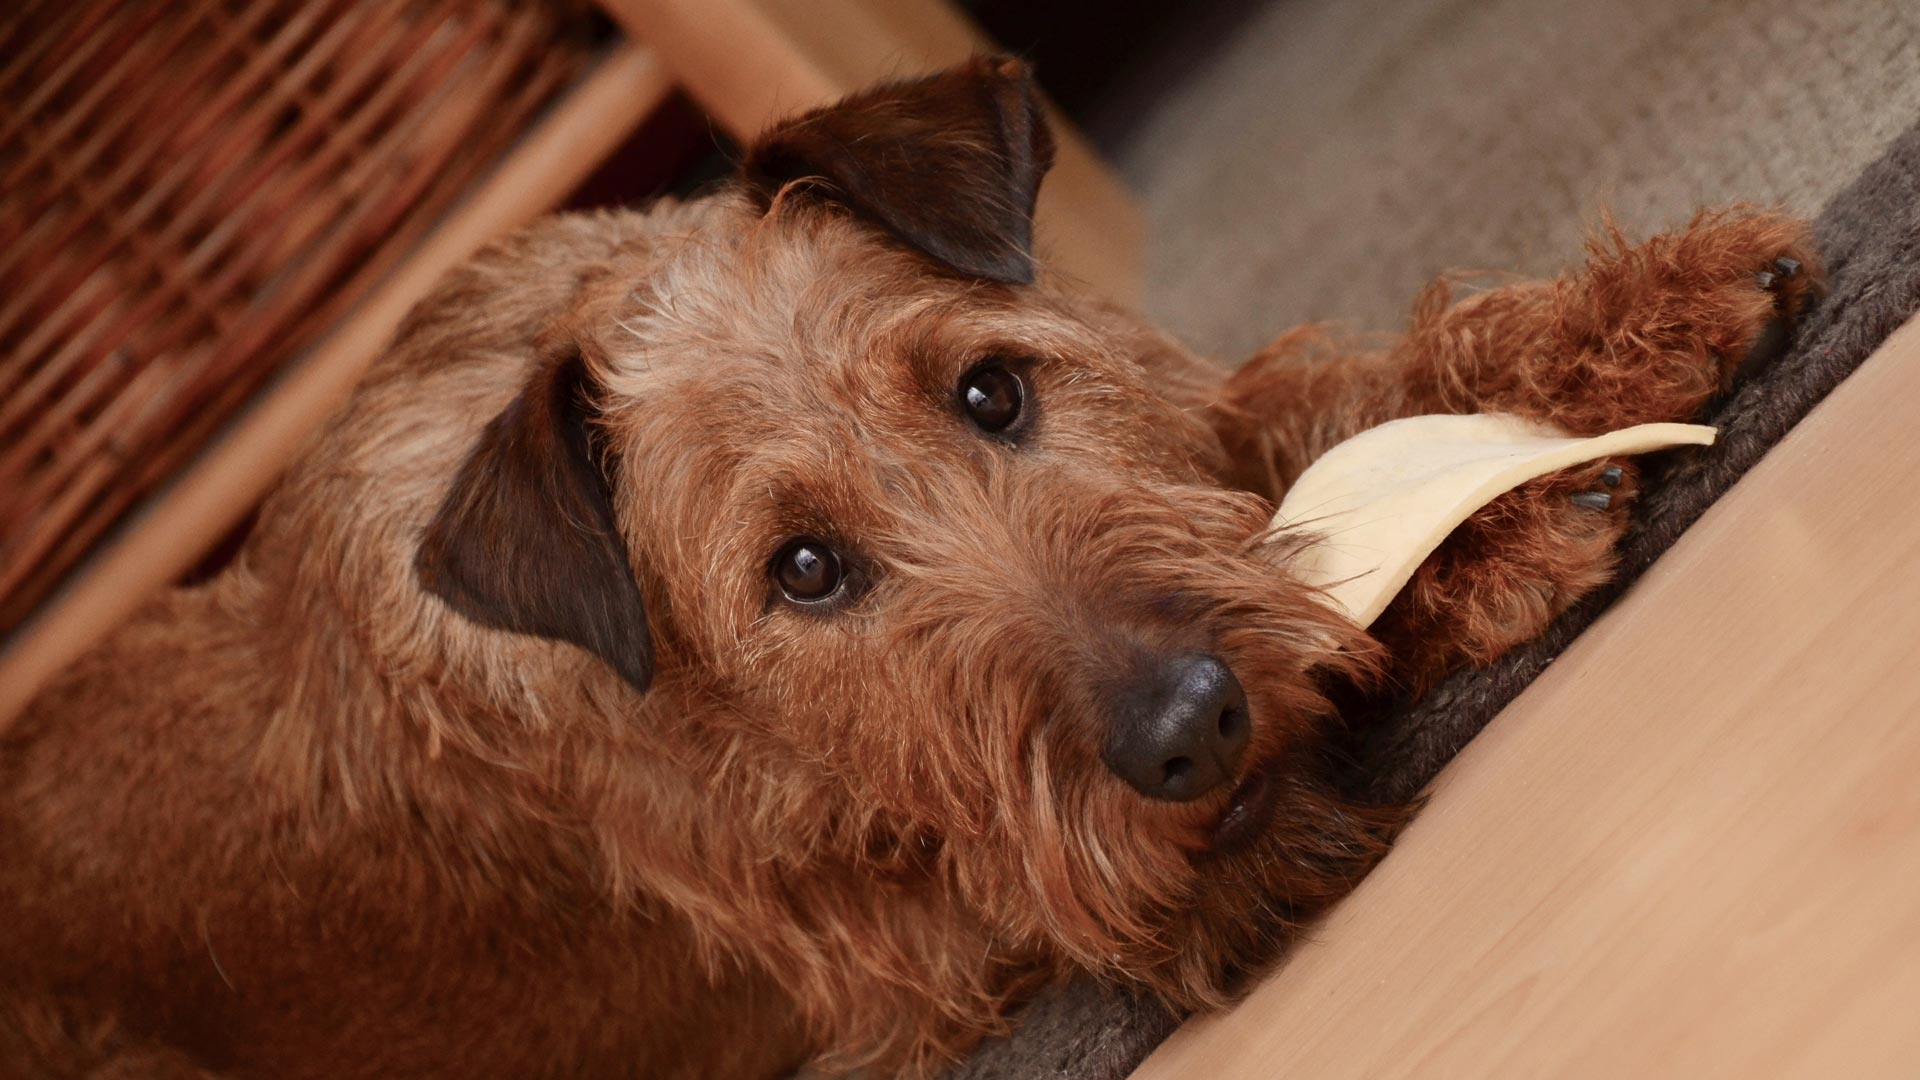 Irish terrier laid on the floor with food